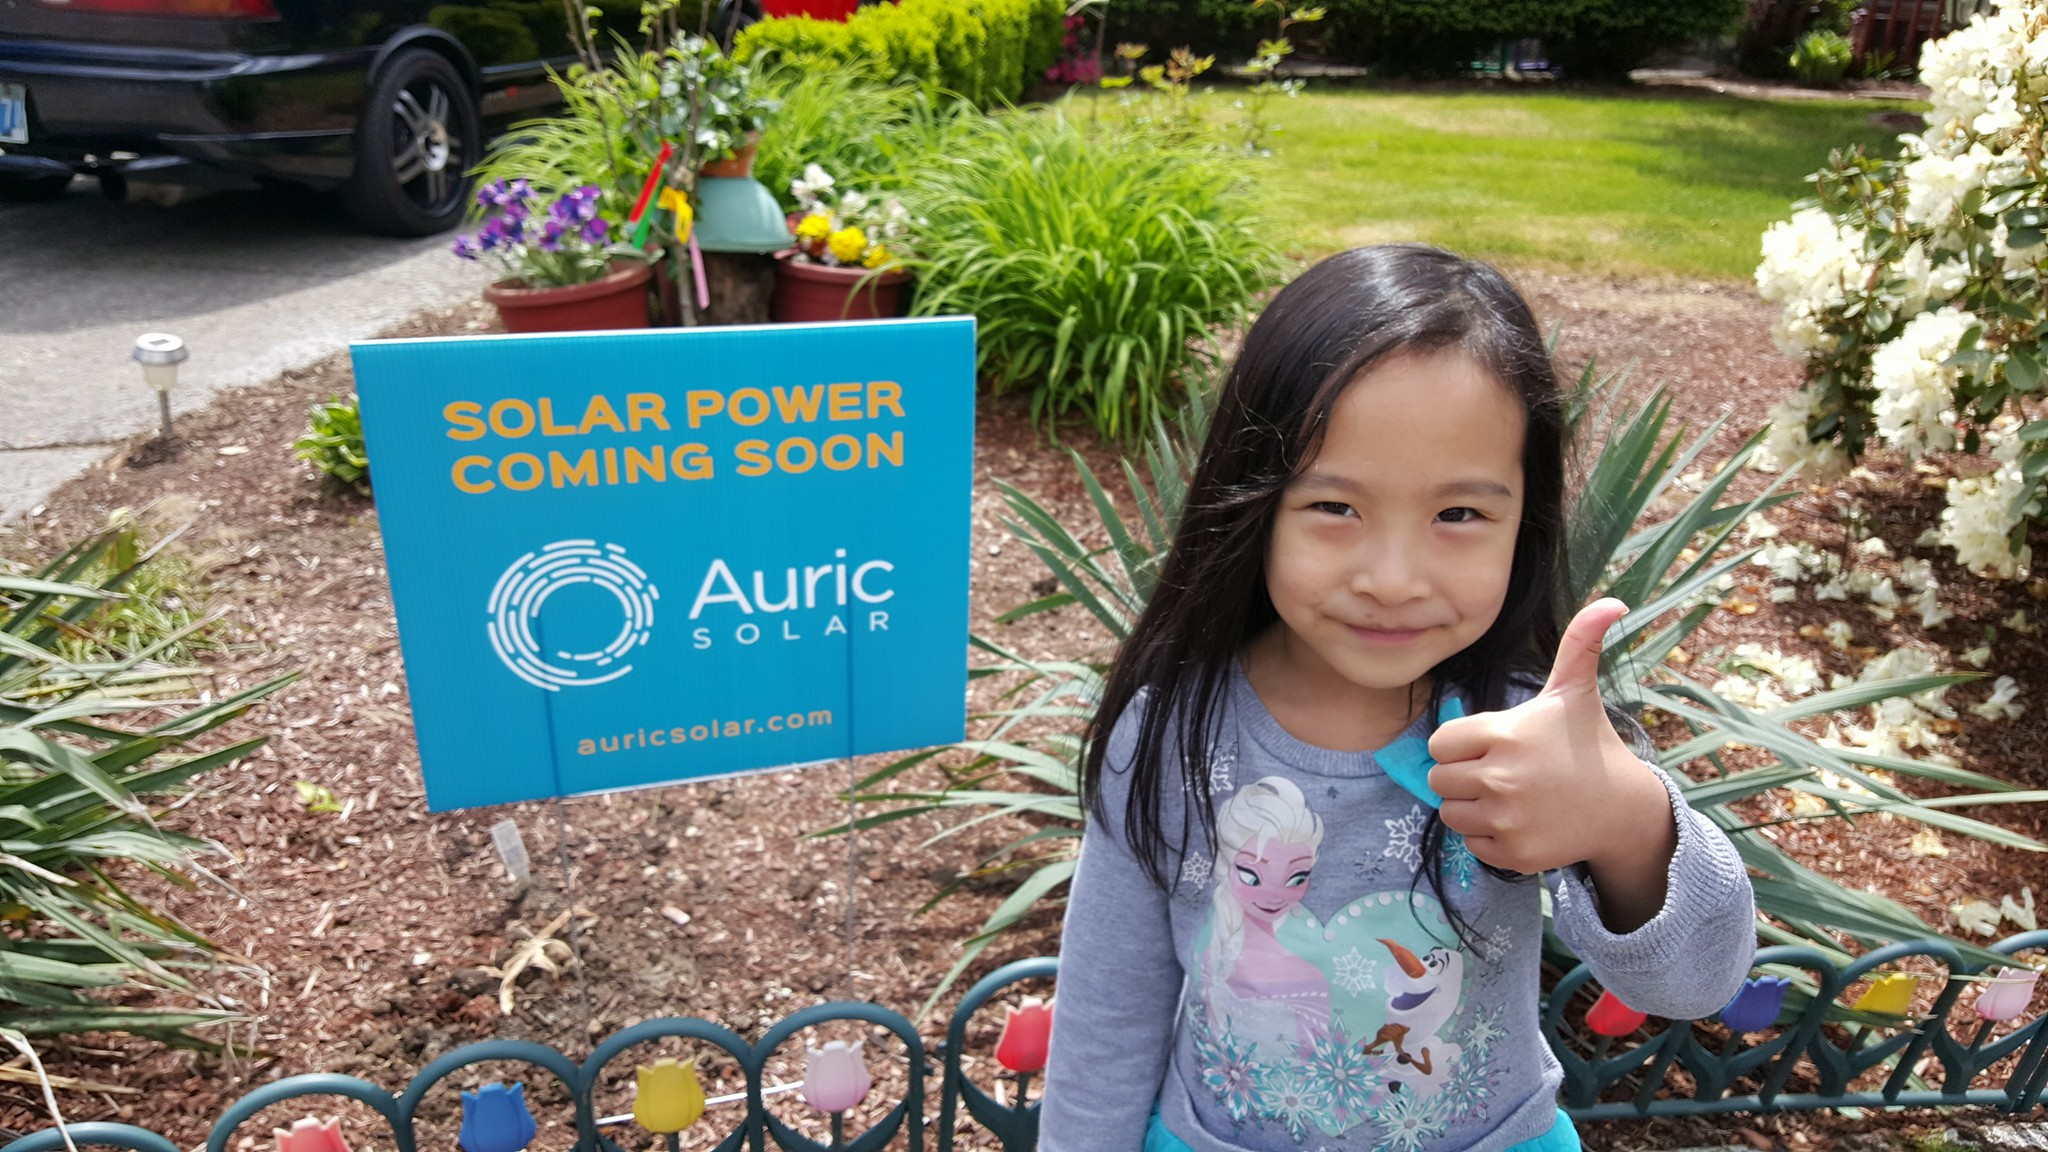 *Award Winning Customer Service - Auric is the most positively reviewed solar company in the United States.*left